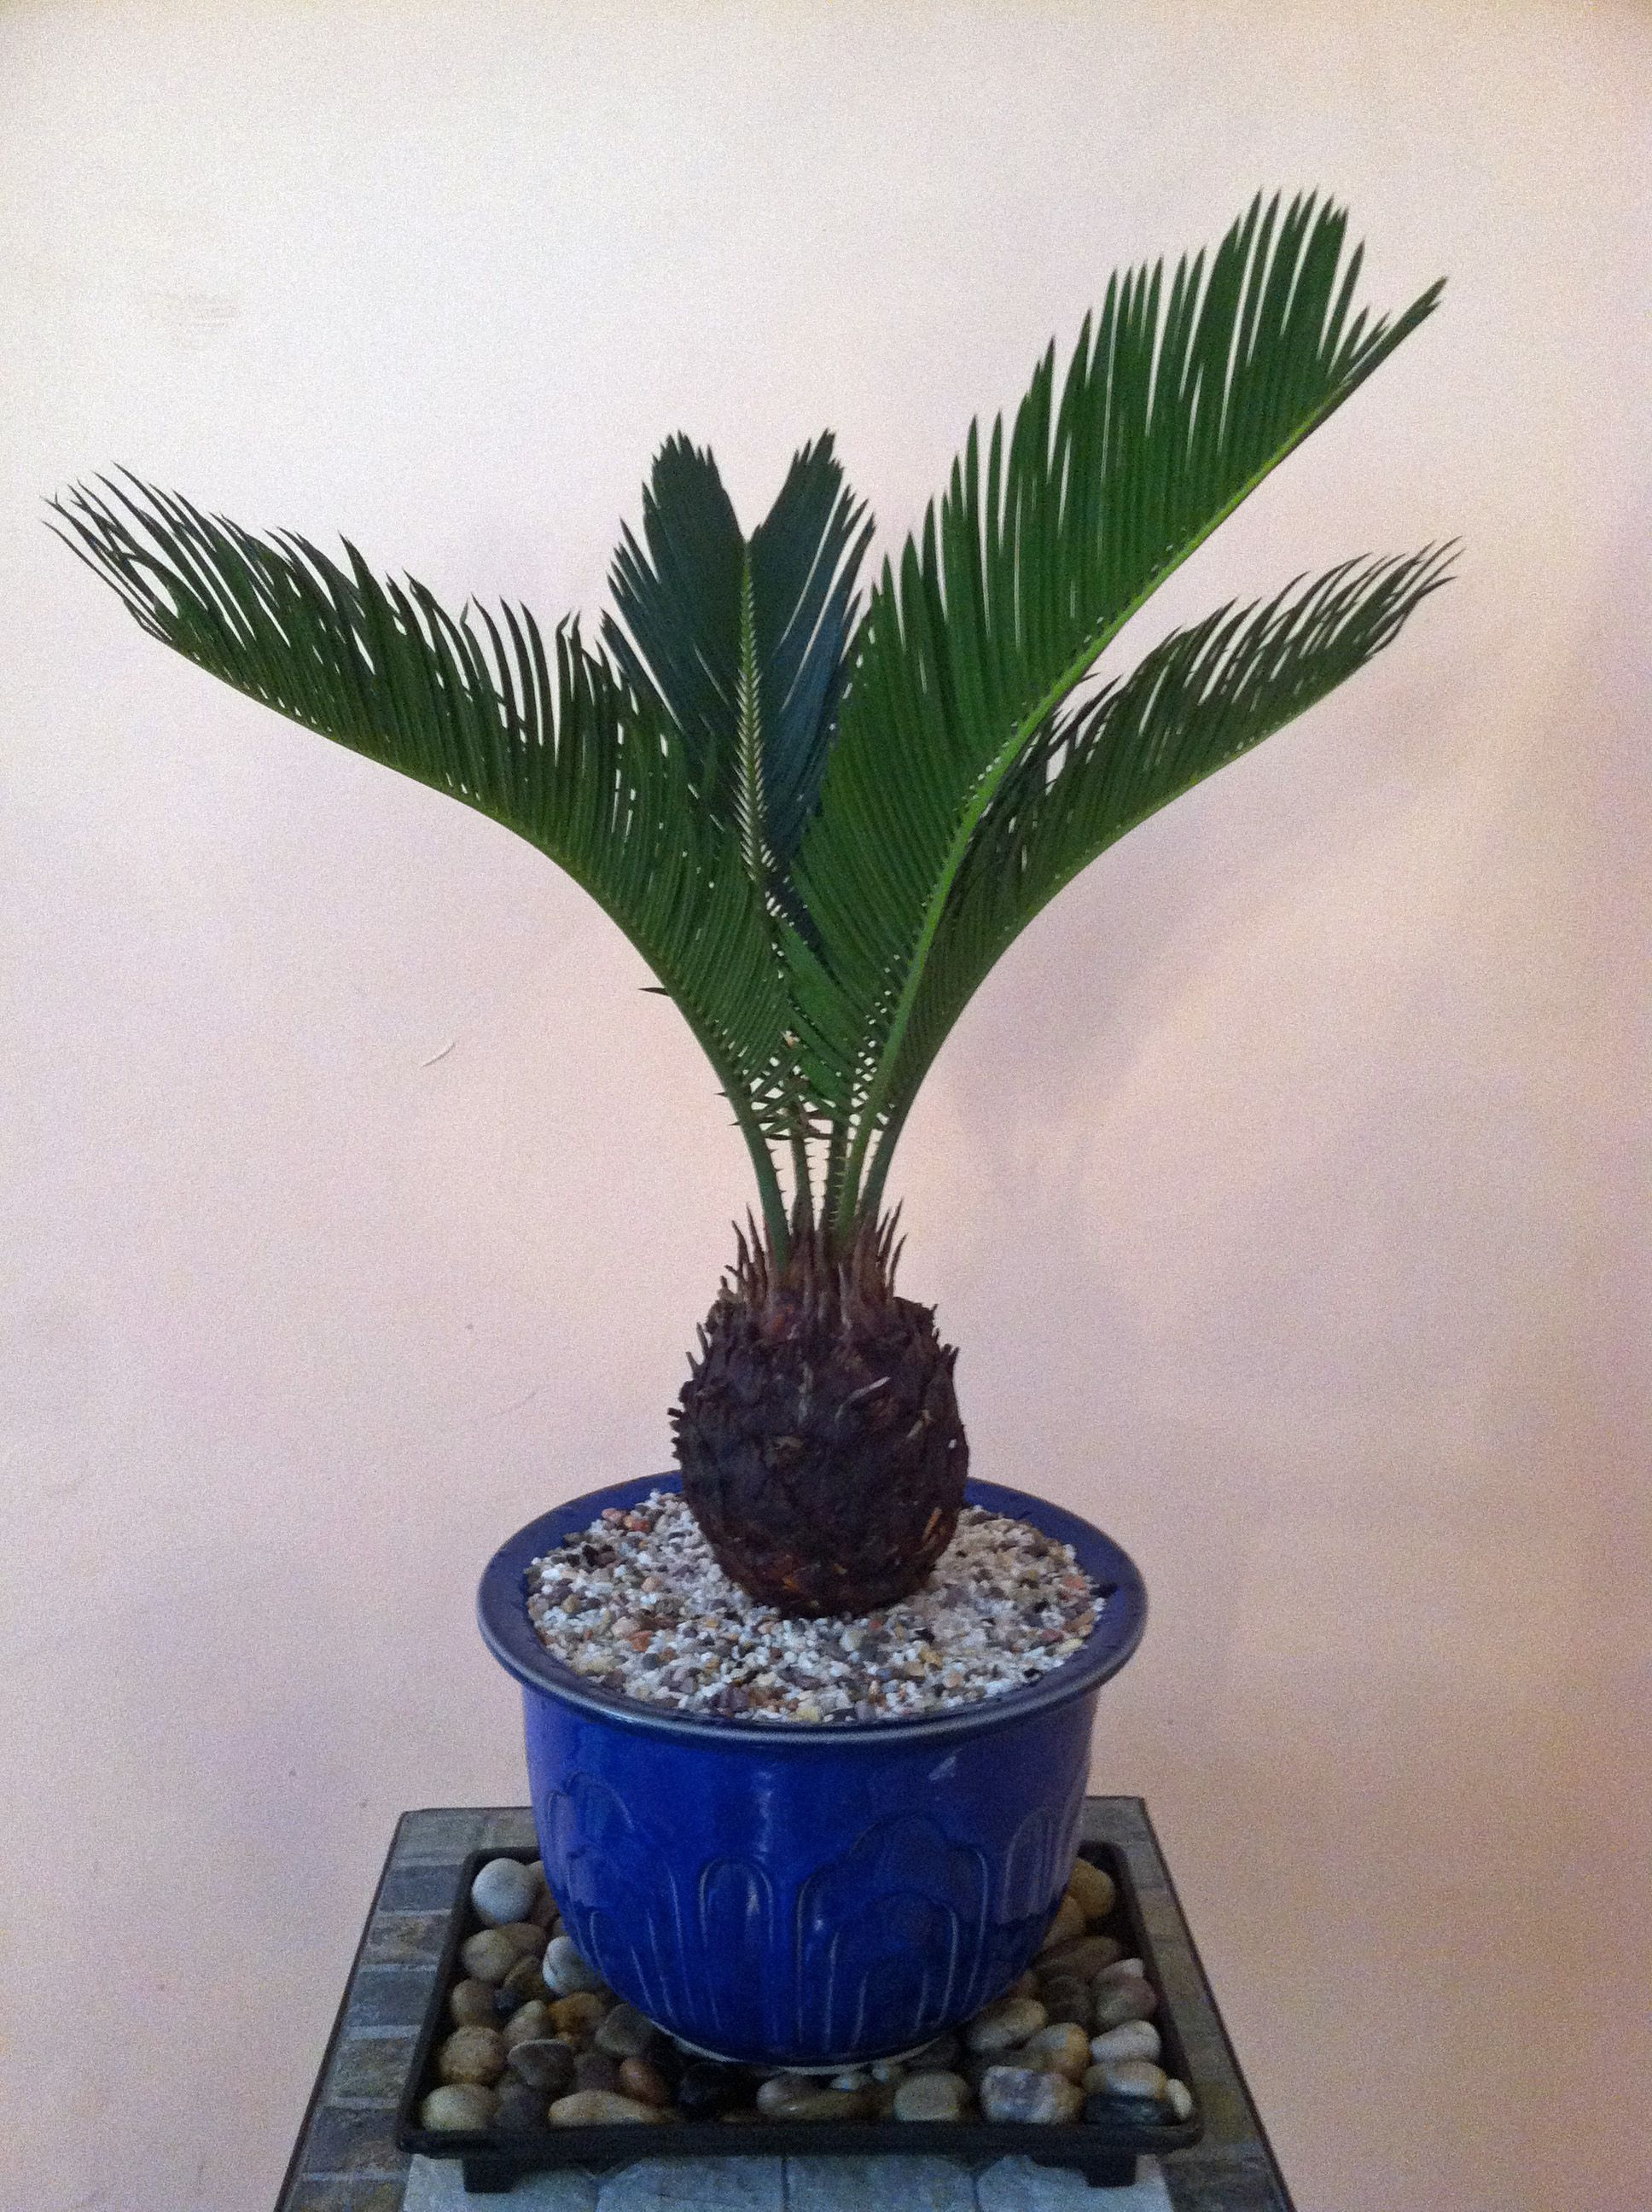 Best Kitchen Gallery: My Sago Palm Bonsai One Of The Oldest Plant Species Still Around of Tree House Plant Names on rachelxblog.com